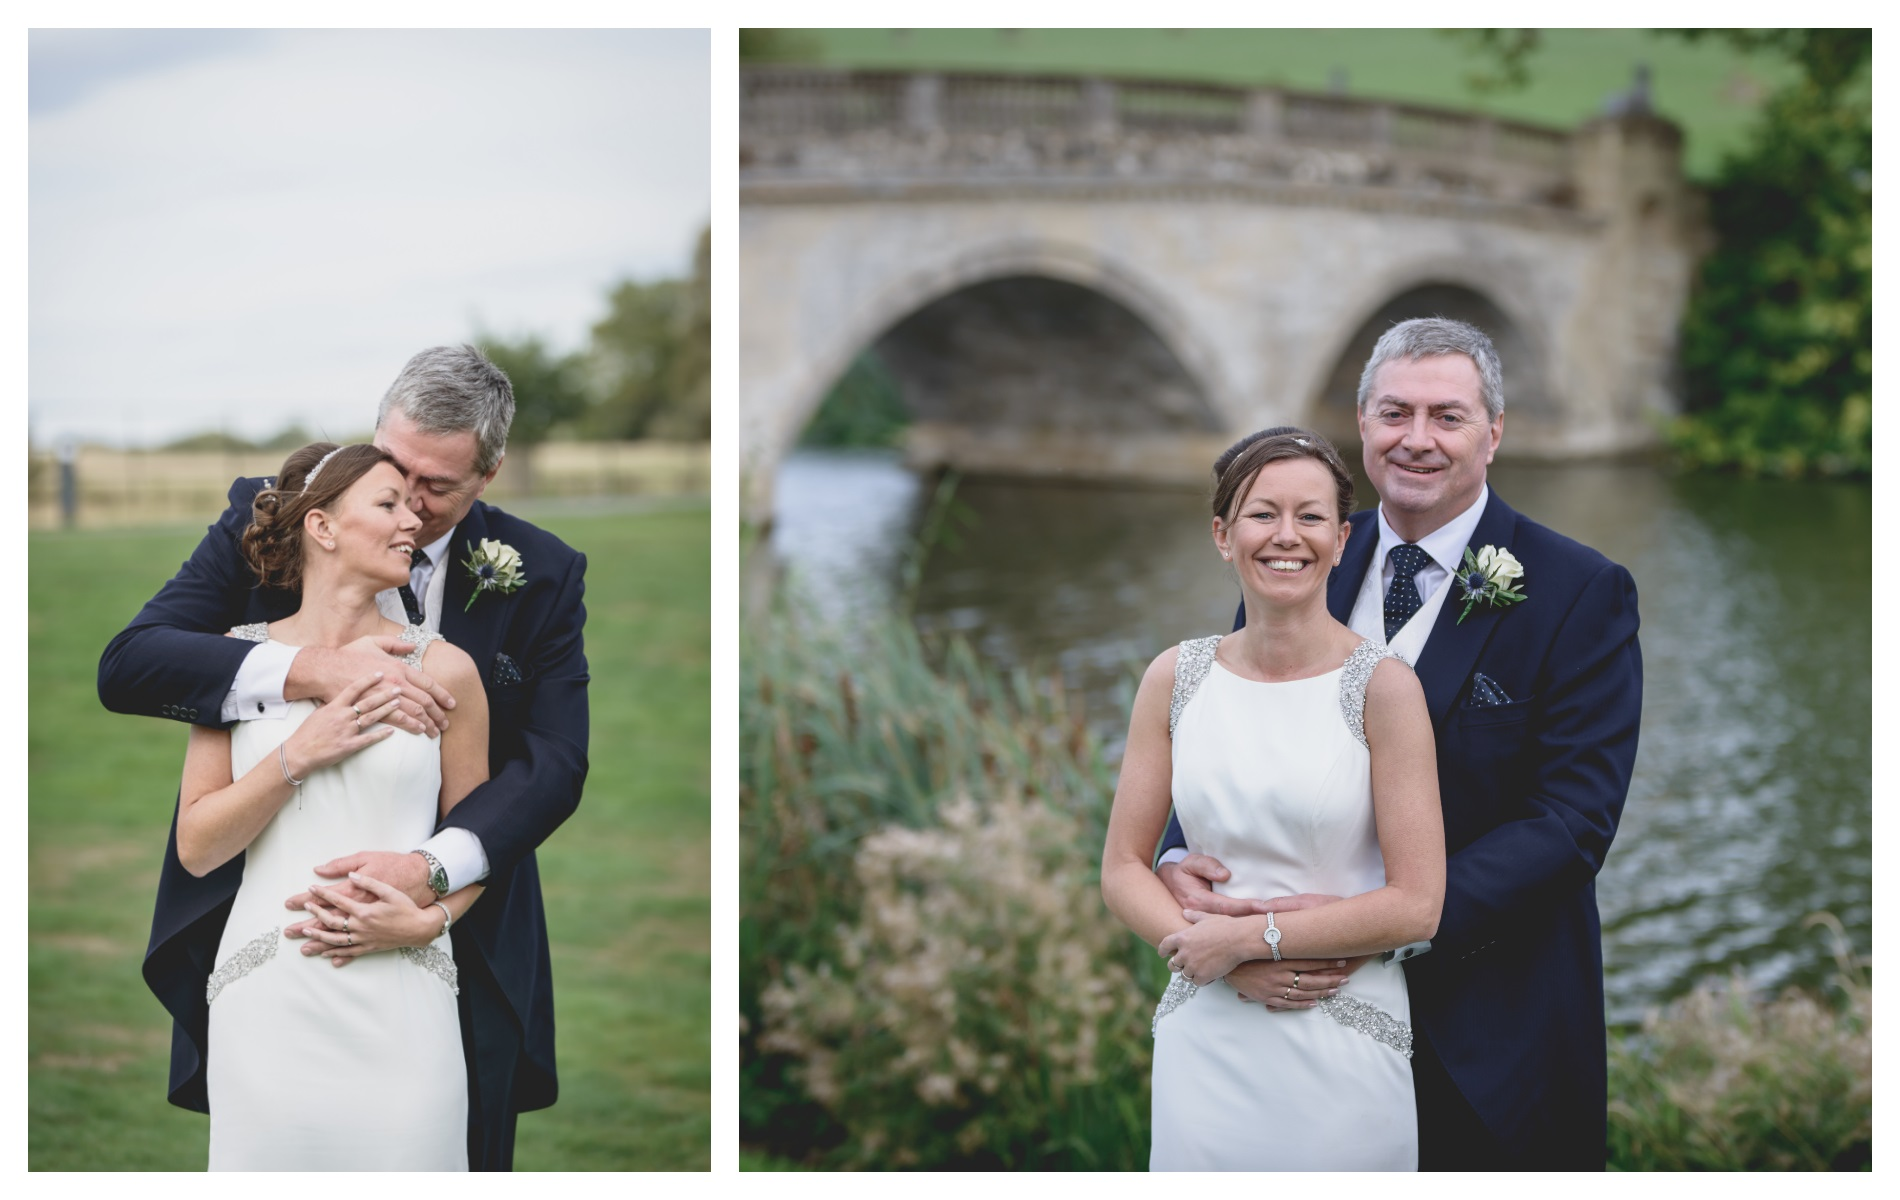 Compton Verney Wedding Photography by Chris Fossey Photography Claire 11